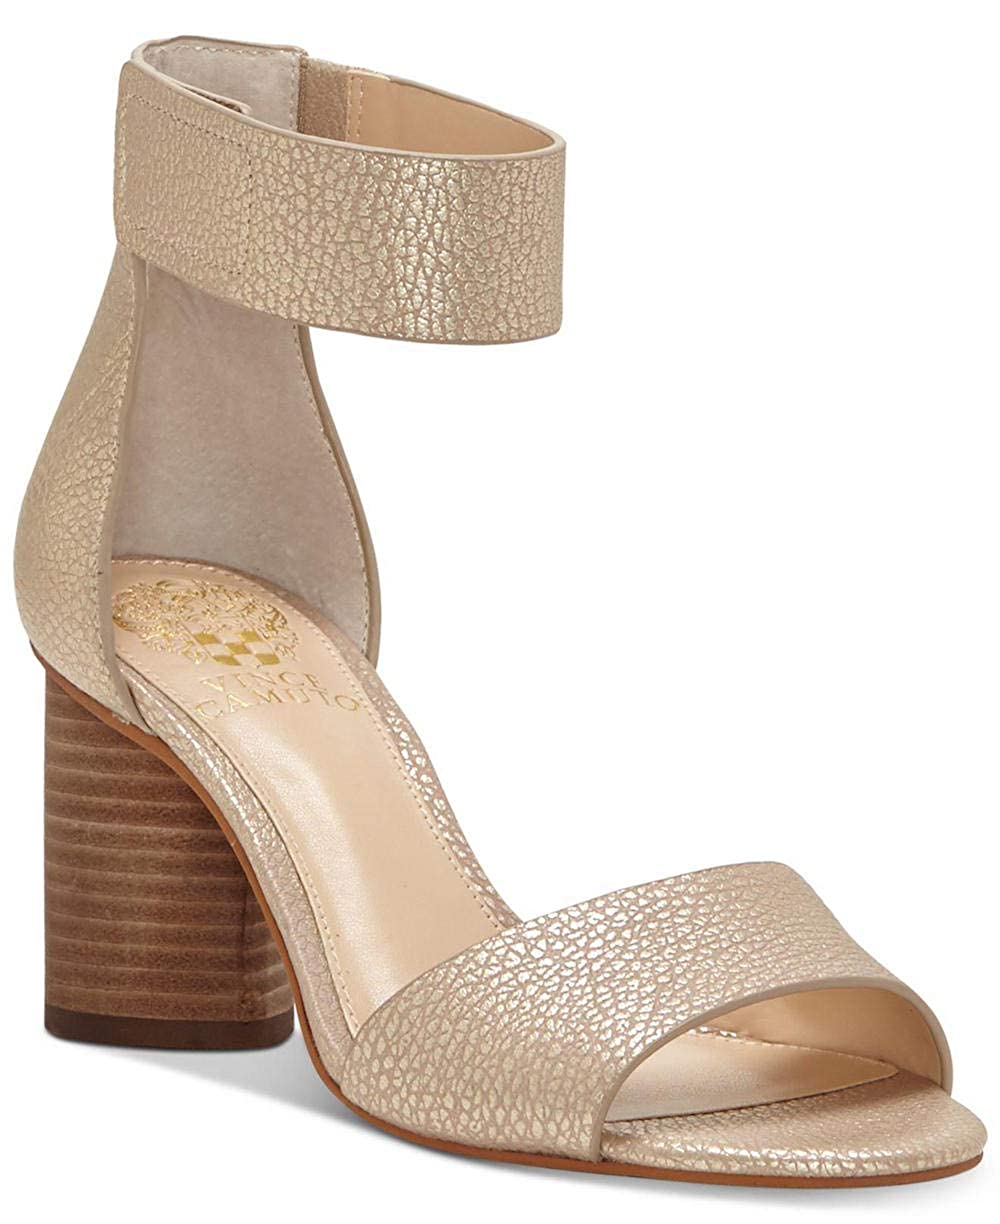 Metal Sand Vince Camuto Women's Jacon Leather W Ankle-High Leather Pump